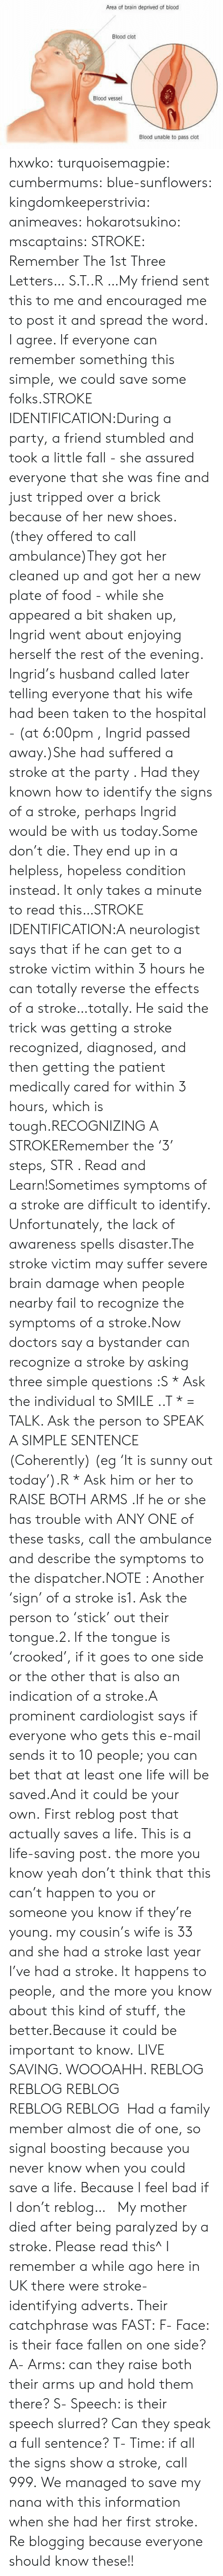 spread the word: Area of brain deprived of blood  Blood clot  Blood vessel  Blood unable to pass clot hxwko:  turquoisemagpie: cumbermums:  blue-sunflowers:  kingdomkeeperstrivia:  animeaves:  hokarotsukino:  mscaptains:  STROKE: Remember The 1st Three Letters… S.T..R …My friend sent this to me and encouraged me to post it and spread the word. I agree. If everyone can remember something this simple, we could save some folks.STROKE IDENTIFICATION:During a party, a friend stumbled and took a little fall - she assured everyone that she was fine and just tripped over a brick because of her new shoes. (they offered to call ambulance)They got her cleaned up and got her a new plate of food - while she appeared a bit shaken up, Ingrid went about enjoying herself the rest of the evening. Ingrid's husband called later telling everyone that his wife had been taken to the hospital - (at 6:00pm , Ingrid passed away.)She had suffered a stroke at the party . Had they known how to identify the signs of a stroke, perhaps Ingrid would be with us today.Some don't die. They end up in a helpless, hopeless condition instead. It only takes a minute to read this…STROKE IDENTIFICATION:A neurologist says that if he can get to a stroke victim within 3 hours he can totally reverse the effects of a stroke…totally. He said the trick was getting a stroke recognized, diagnosed, and then getting the patient medically cared for within 3 hours, which is tough.RECOGNIZING A STROKERemember the '3' steps, STR . Read and Learn!Sometimes symptoms of a stroke are difficult to identify. Unfortunately, the lack of awareness spells disaster.The stroke victim may suffer severe brain damage when people nearby fail to recognize the symptoms of a stroke.Now doctors say a bystander can recognize a stroke by asking three simple questions:S * Ask the individual to SMILE ..T * = TALK. Ask the person to SPEAK A SIMPLE SENTENCE (Coherently) (eg 'It is sunny out today').R * Ask him or her to RAISE BOTH ARMS .If he or sh